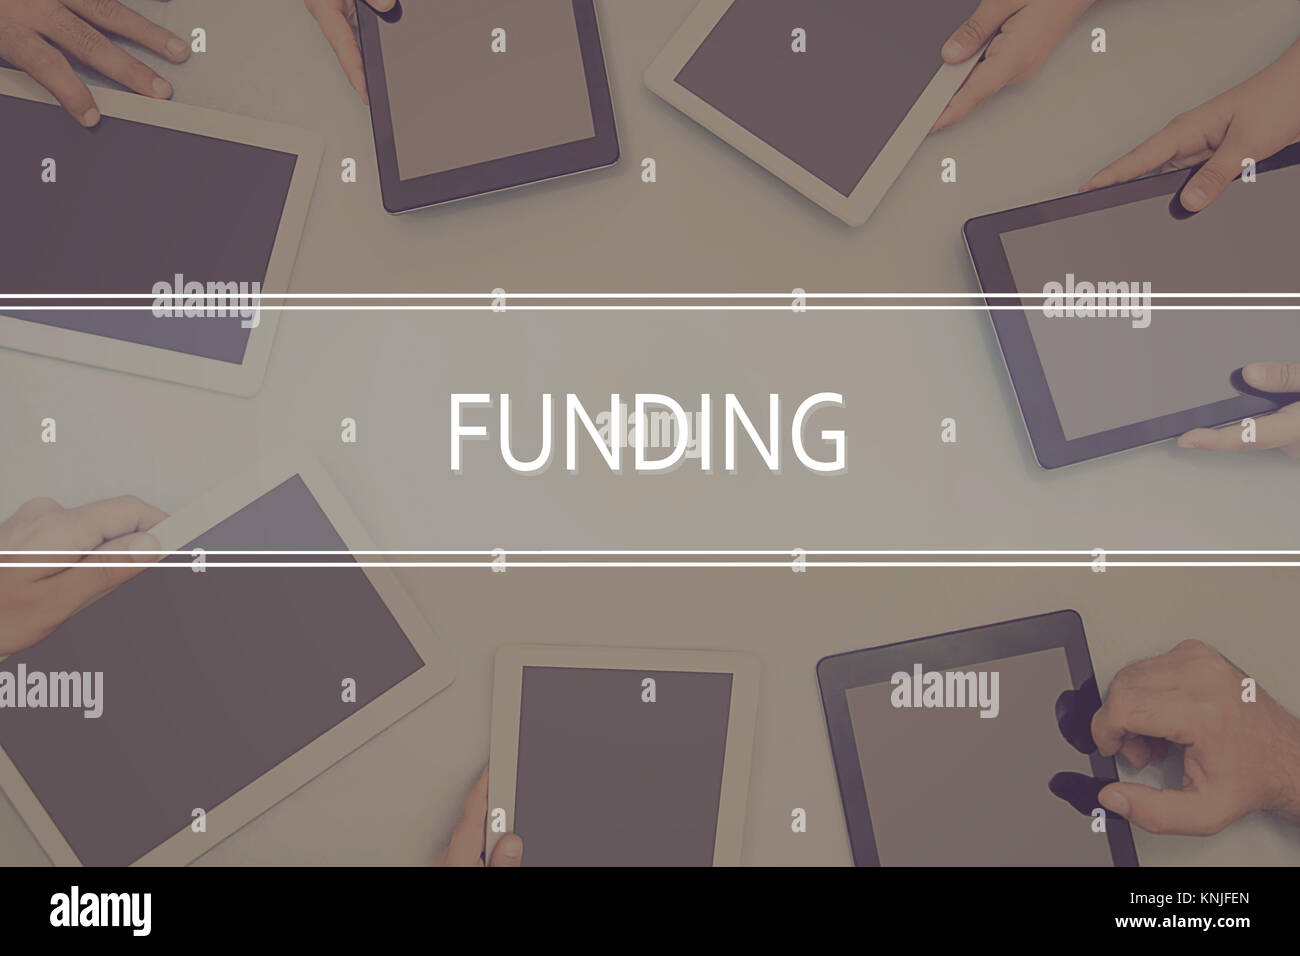 FUNDING CONCEPT Business Concept. - Stock Image